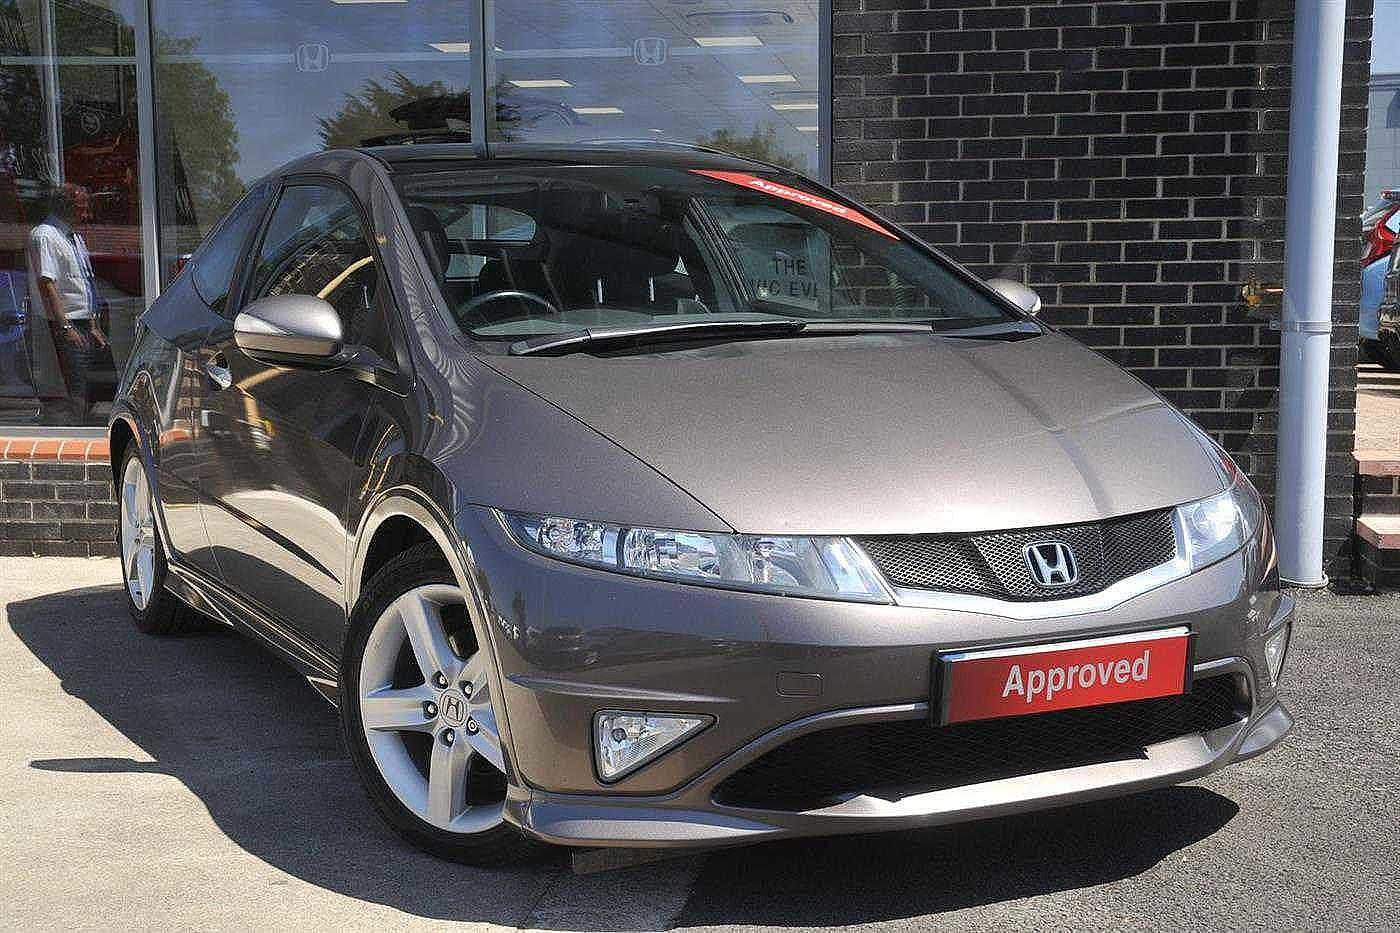 Used Honda Civic Hatchback: Buy Approved Second-Hand ...